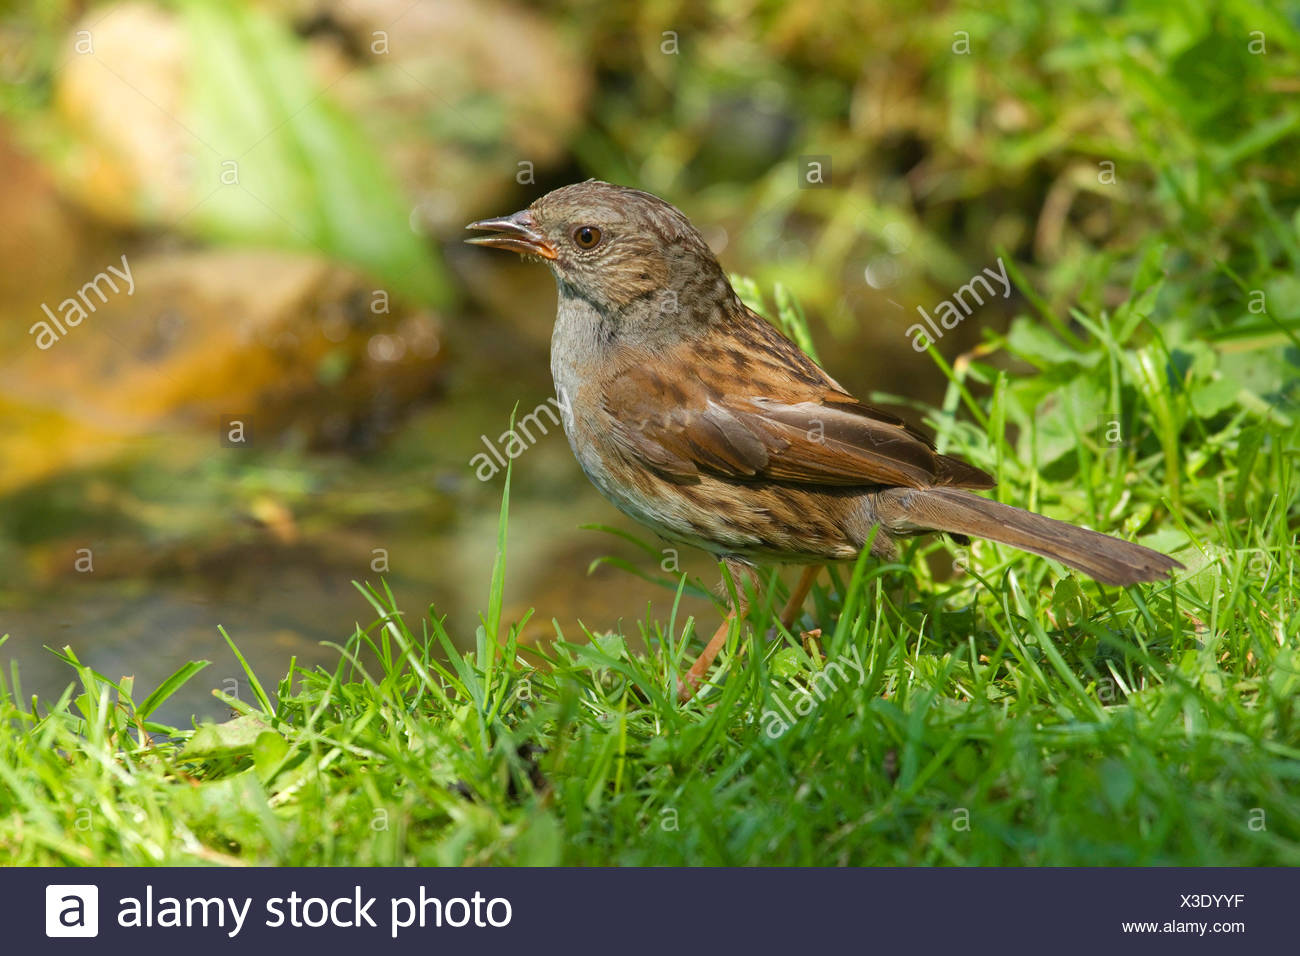 dunnock (Prunella modularis), sings at a bird front, Germany, North Rhine-Westphalia - Stock Image